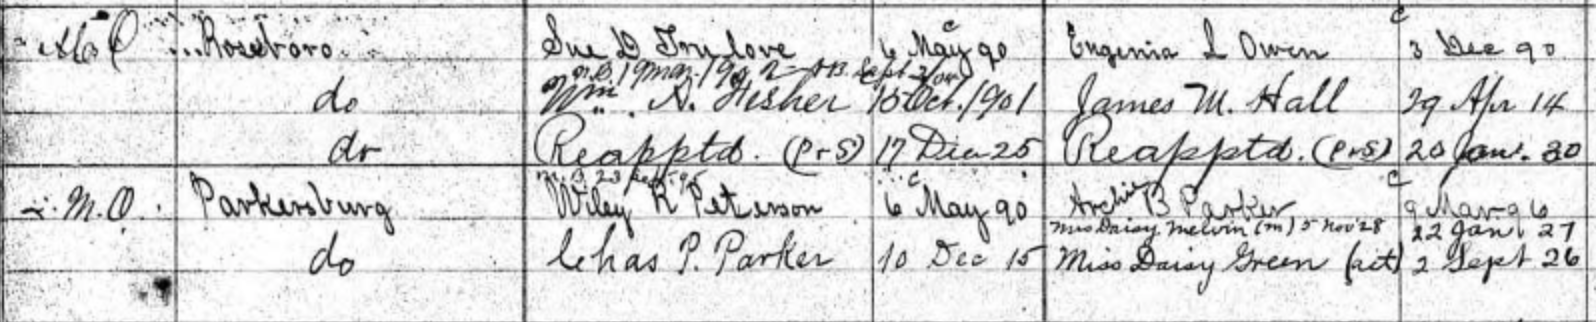 Record of Appointment of Postmasters, 1832–1971, record for Sue D. Truelove. NARA M841.